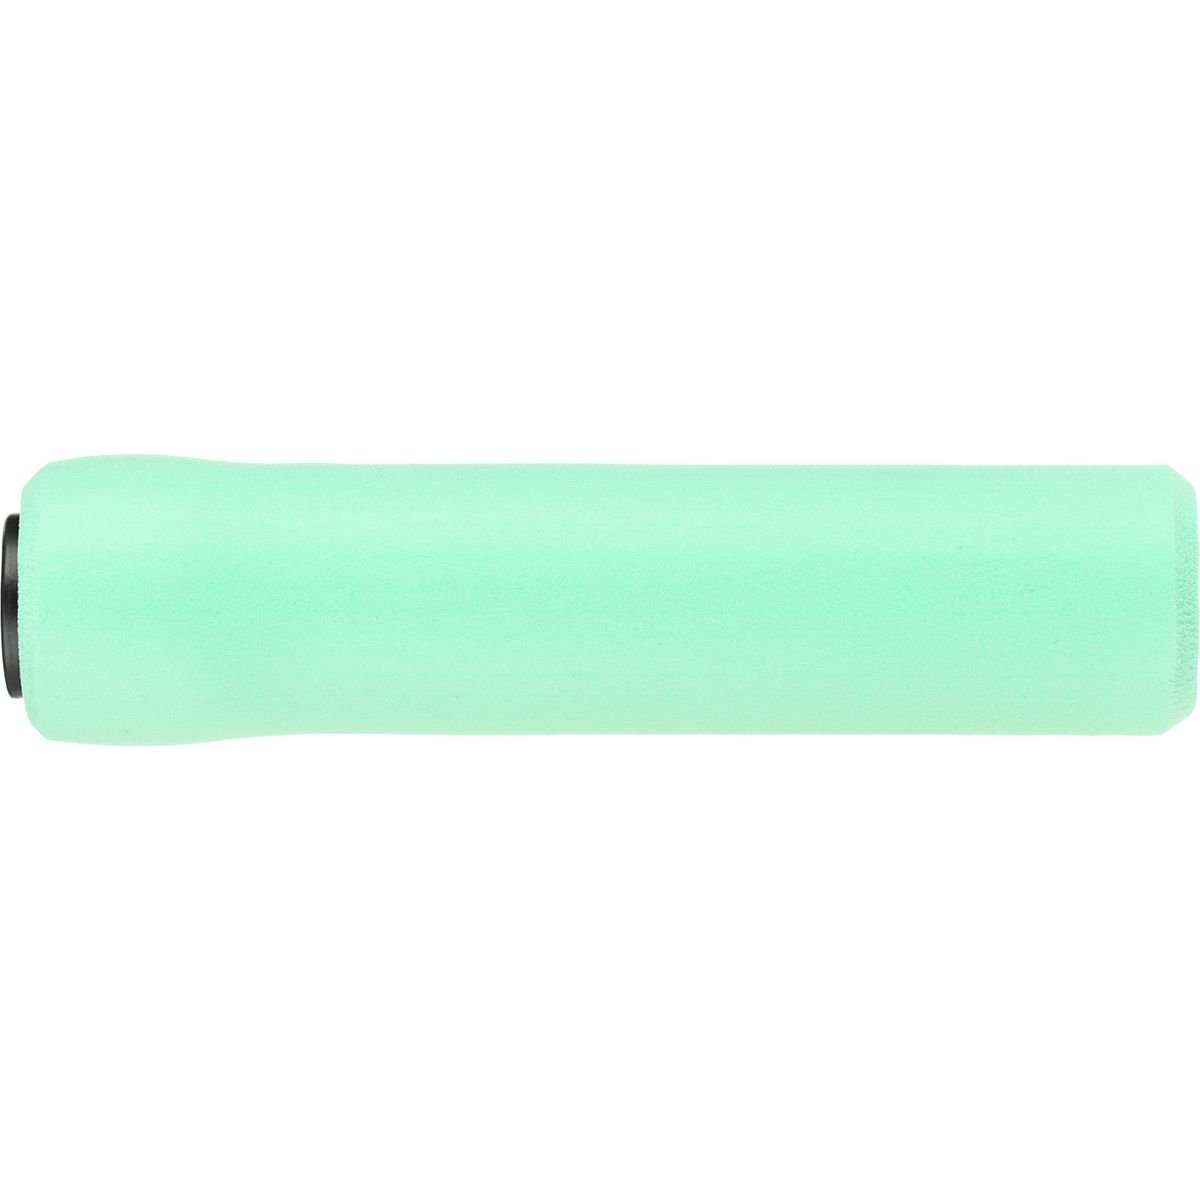 ESI Grips Extra Chunky MTB Grip to ESI 34mm Extra Chunky Silicone Grips Limited Edition: Sea Foam by ESI Grips